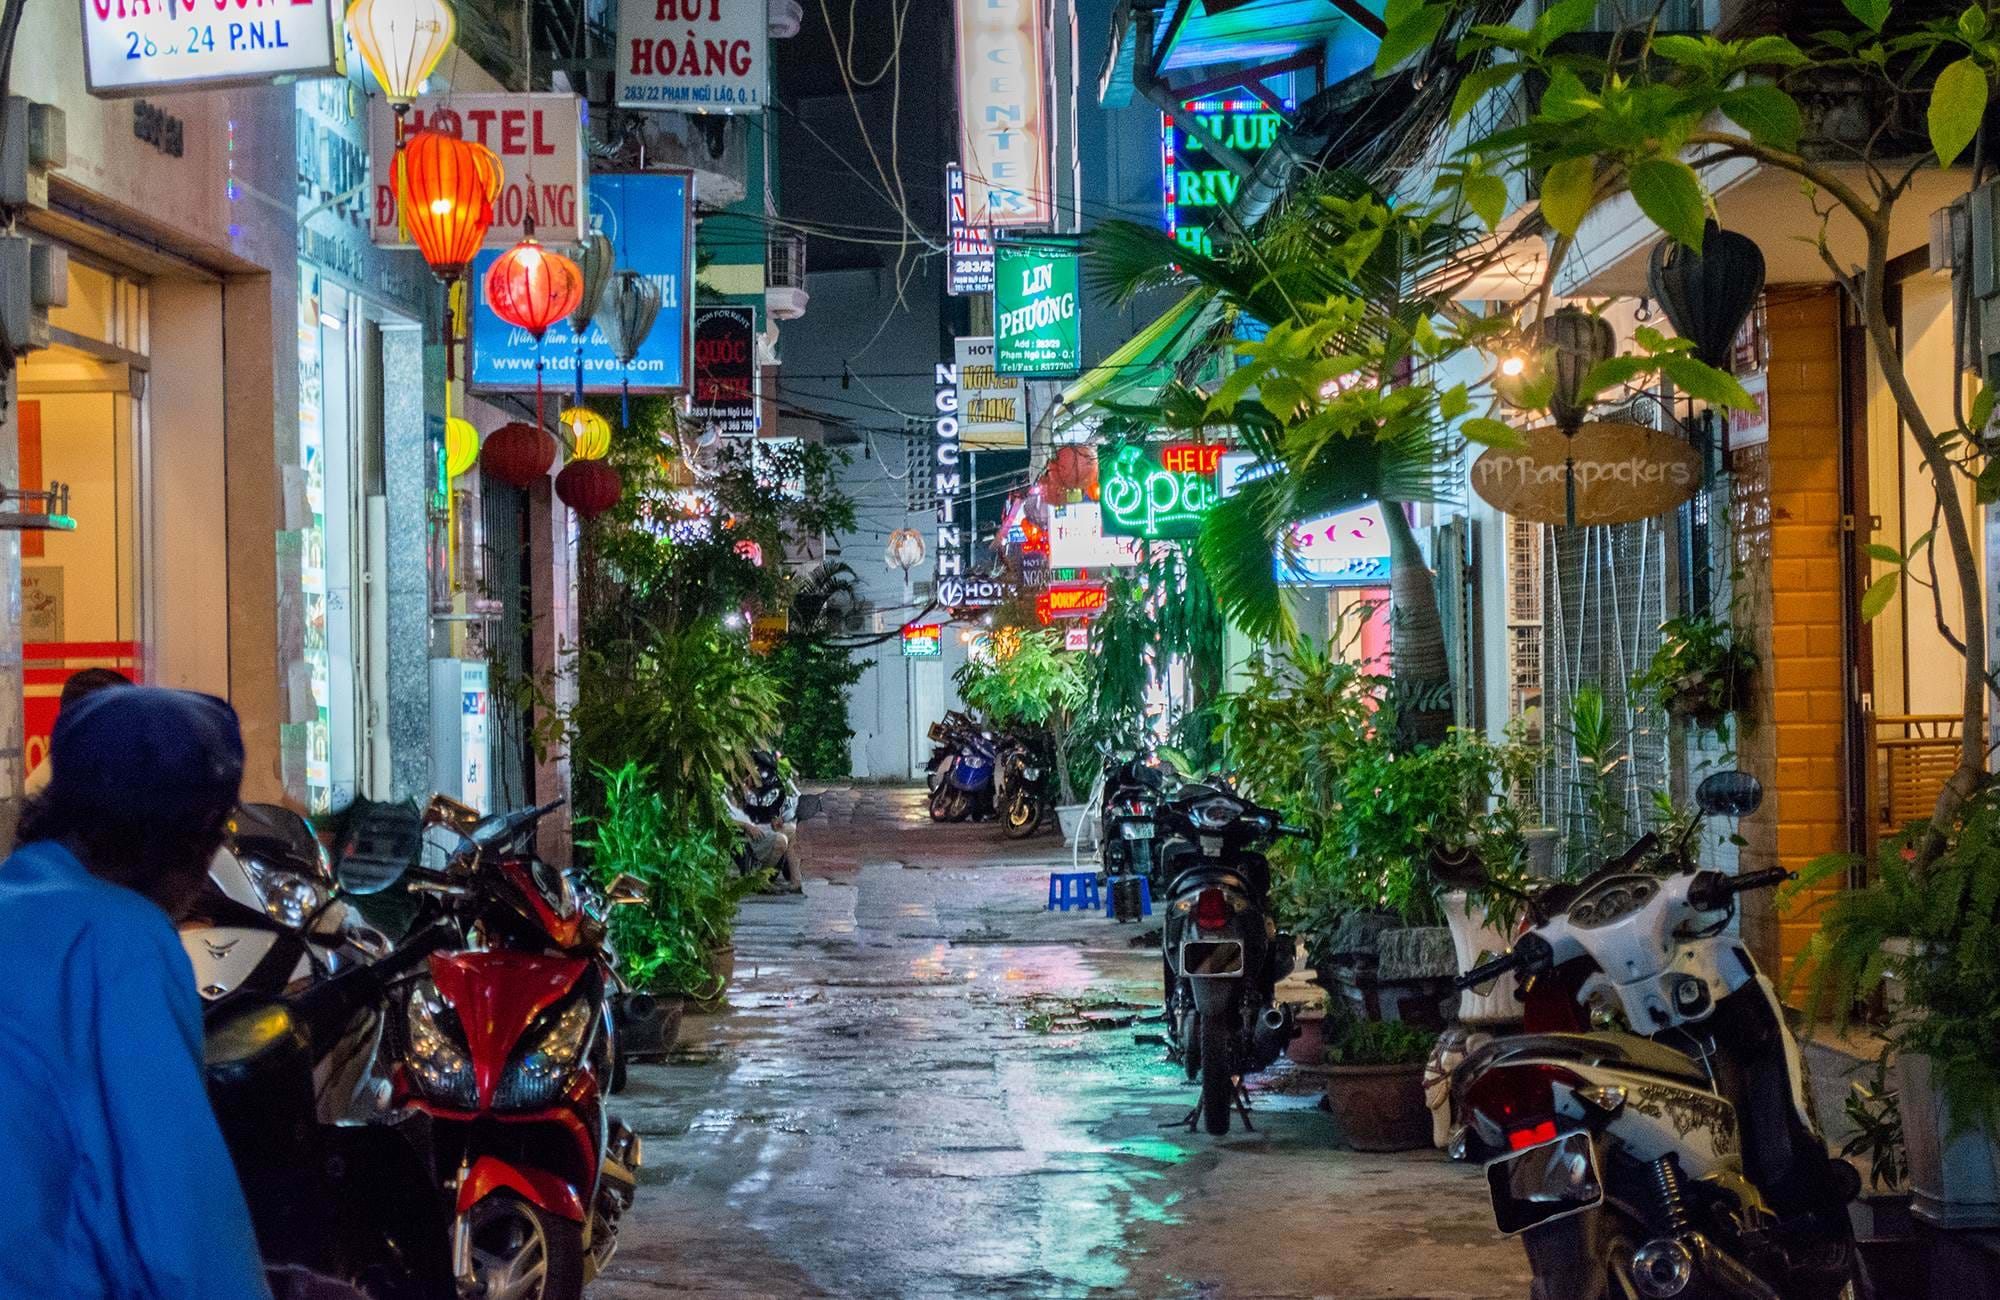 ho-chi-minh-city-vietnam-bui-vien-backpacking-street-cover